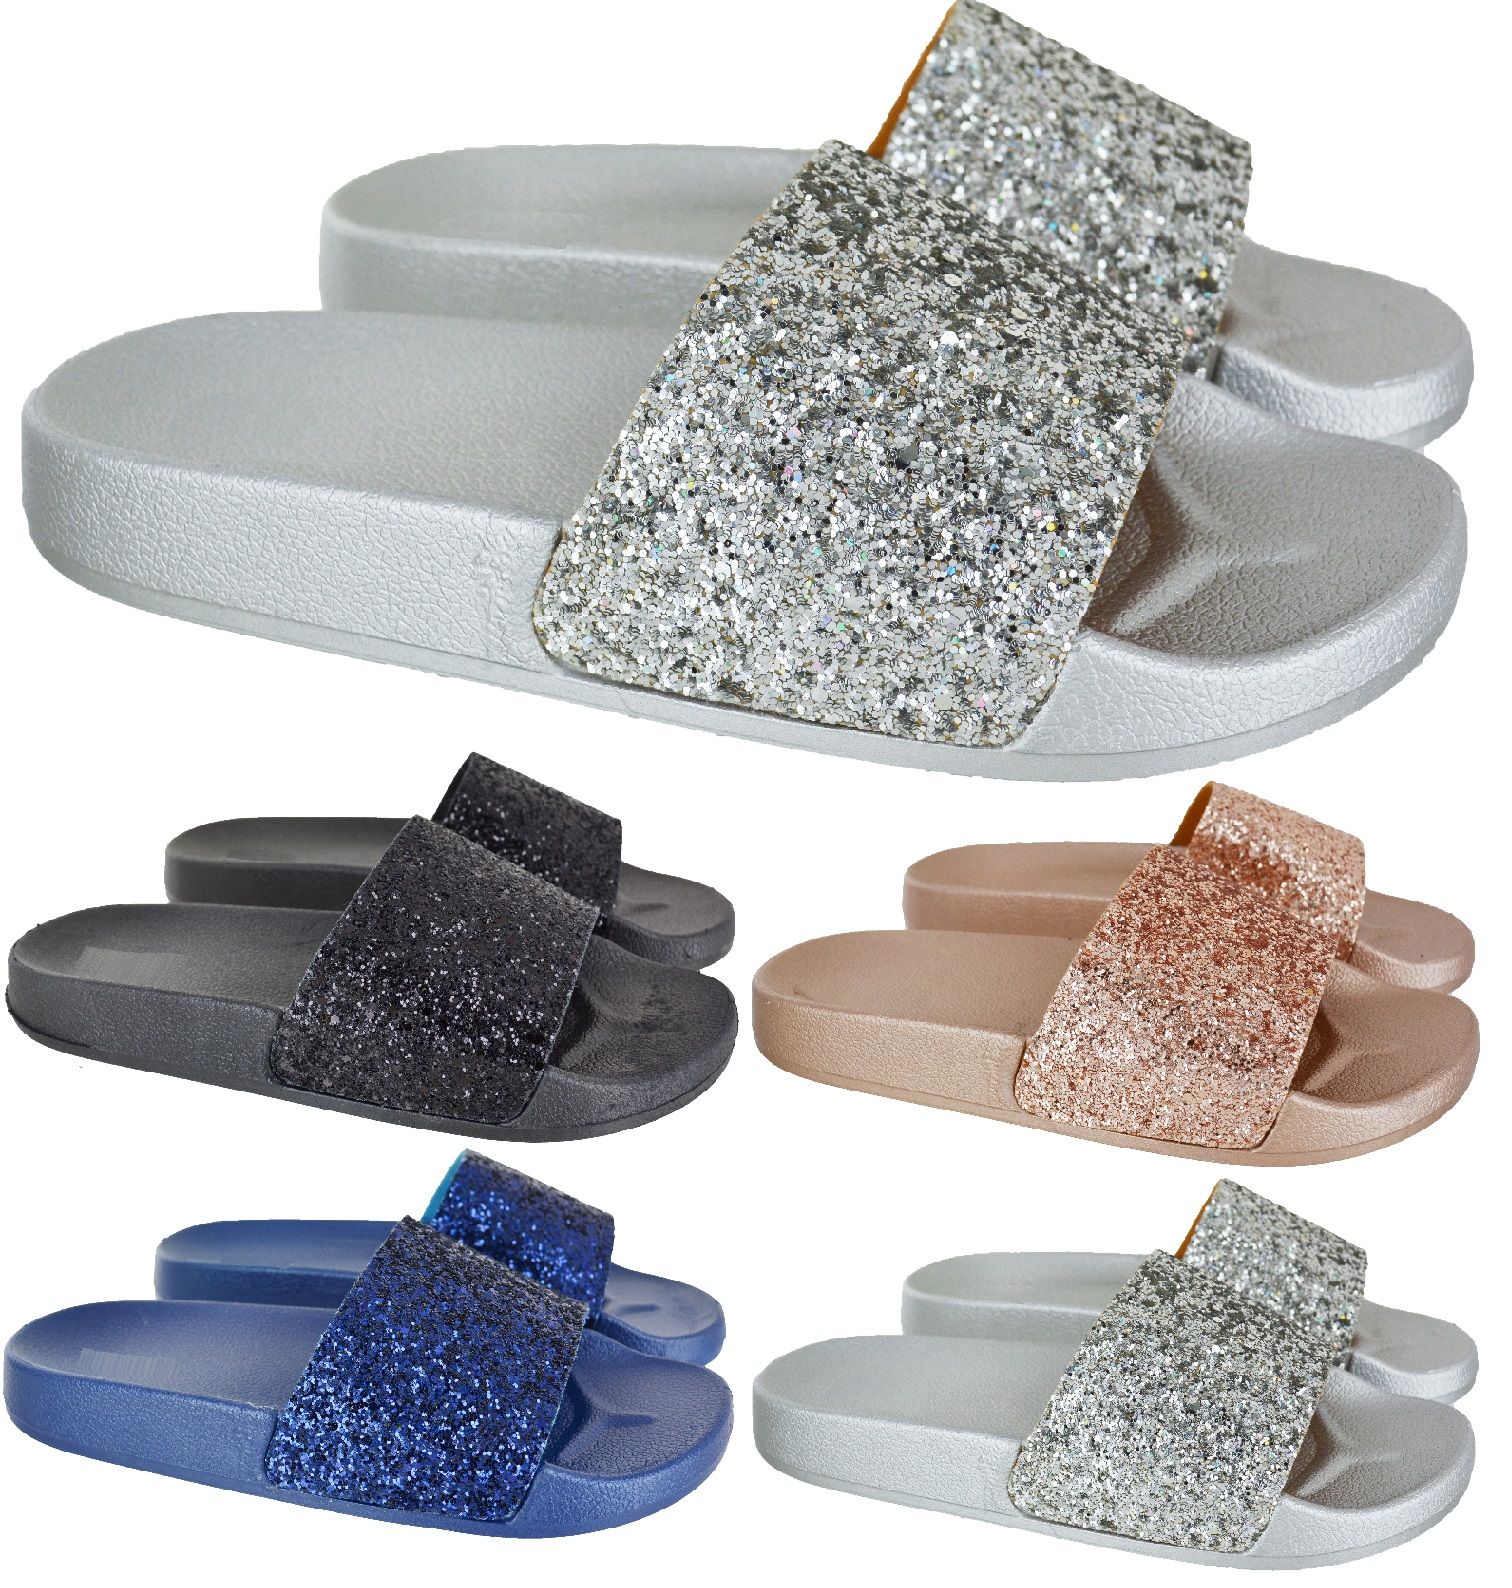 5c97c8fbe9d7 Sentinel LADIES WOMENS COMFY SLIP ON MULE SUMMER GLITTER SLIDERS FLAT  SLIPPERS SHOES SIZE